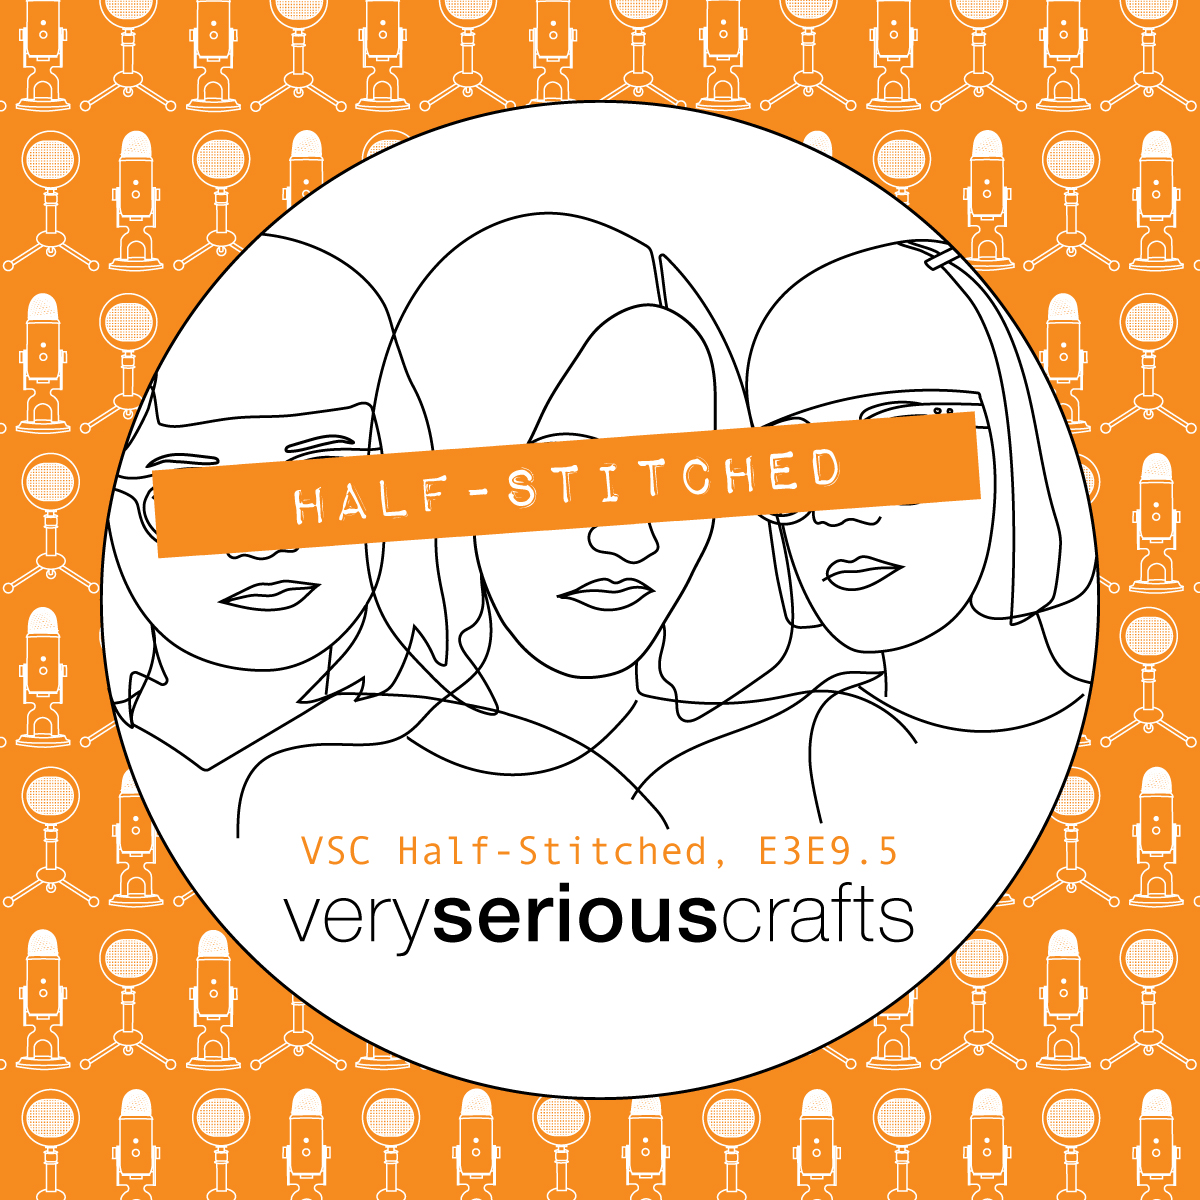 The Very Serious Crafts Podcast, Patreon Half-Stitched Episode S3E09.5